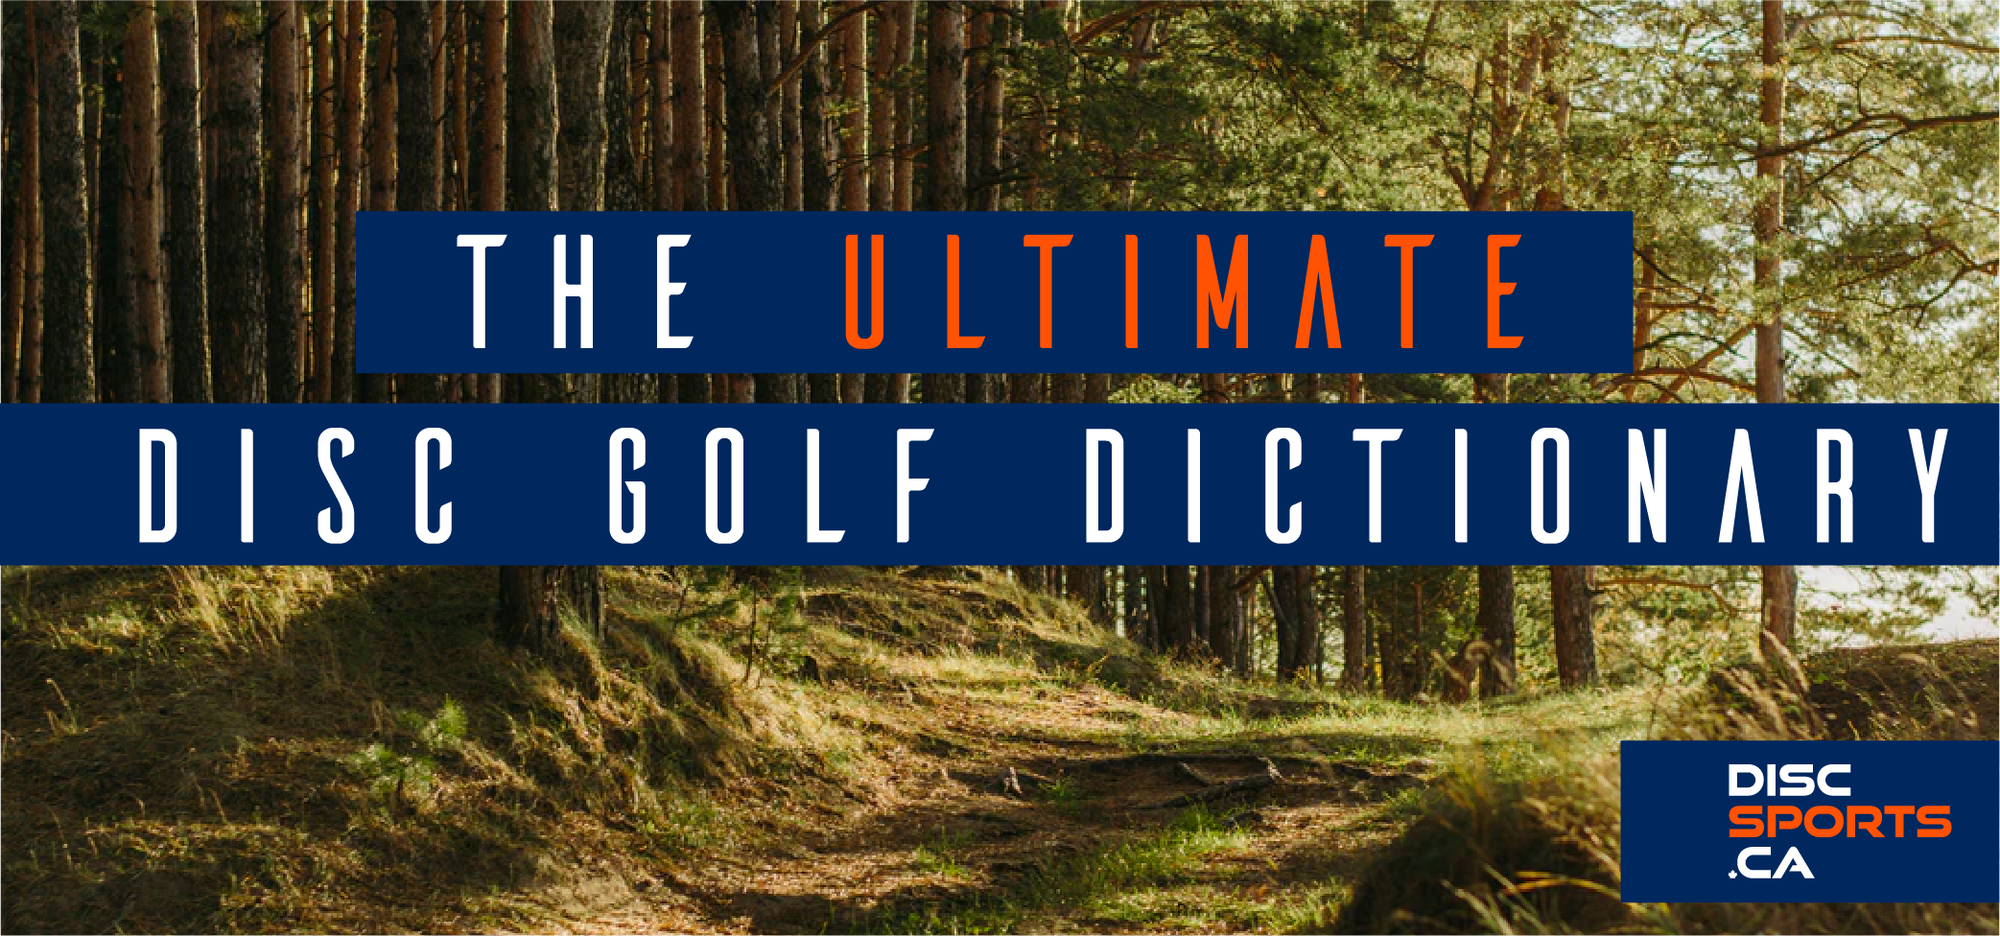 The Ultimate Disc Golf Dictionary